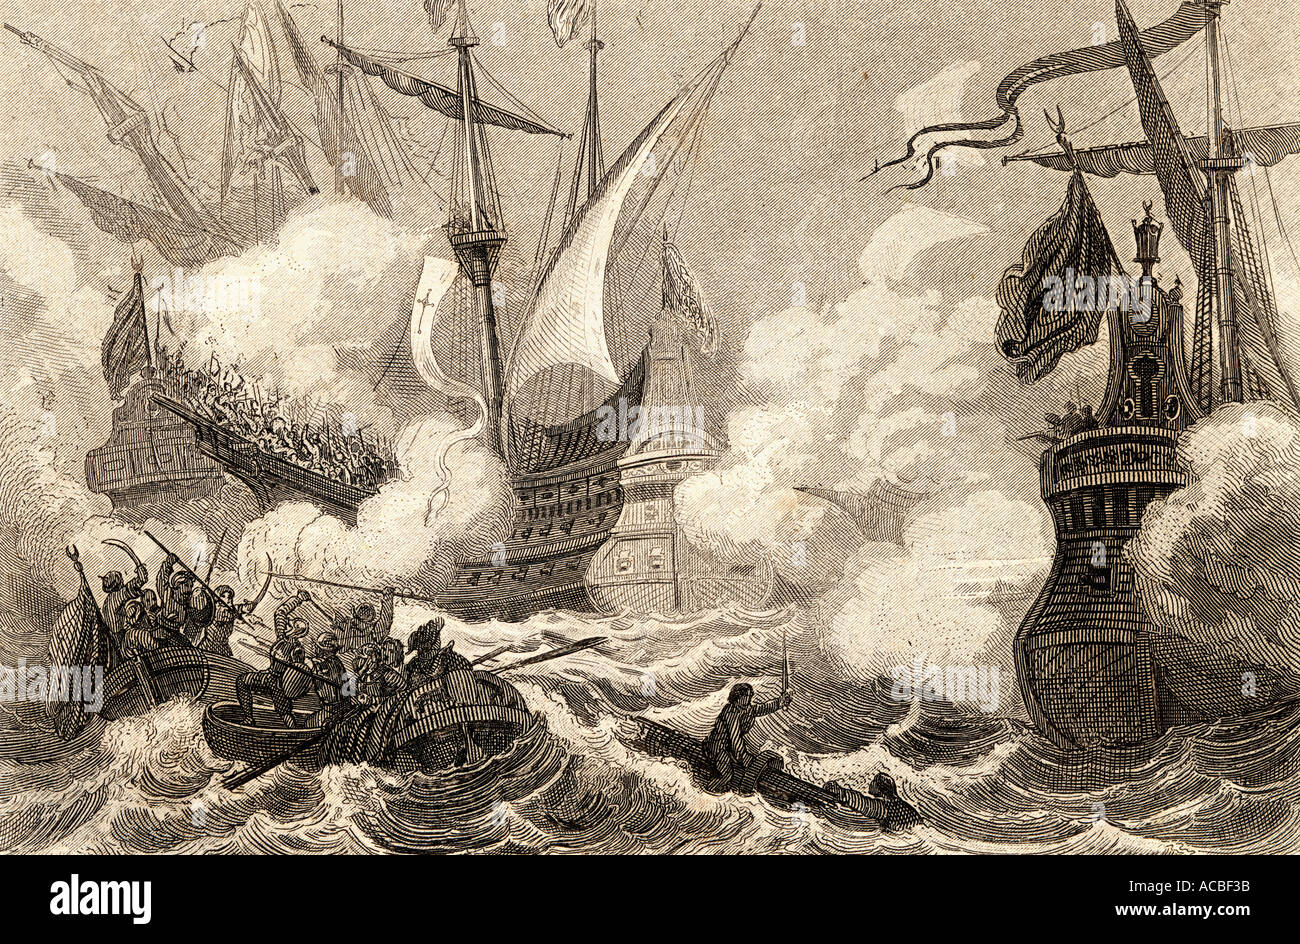 Naval combat at Lepanto Nafpaktos Greece 1571 - Stock Image